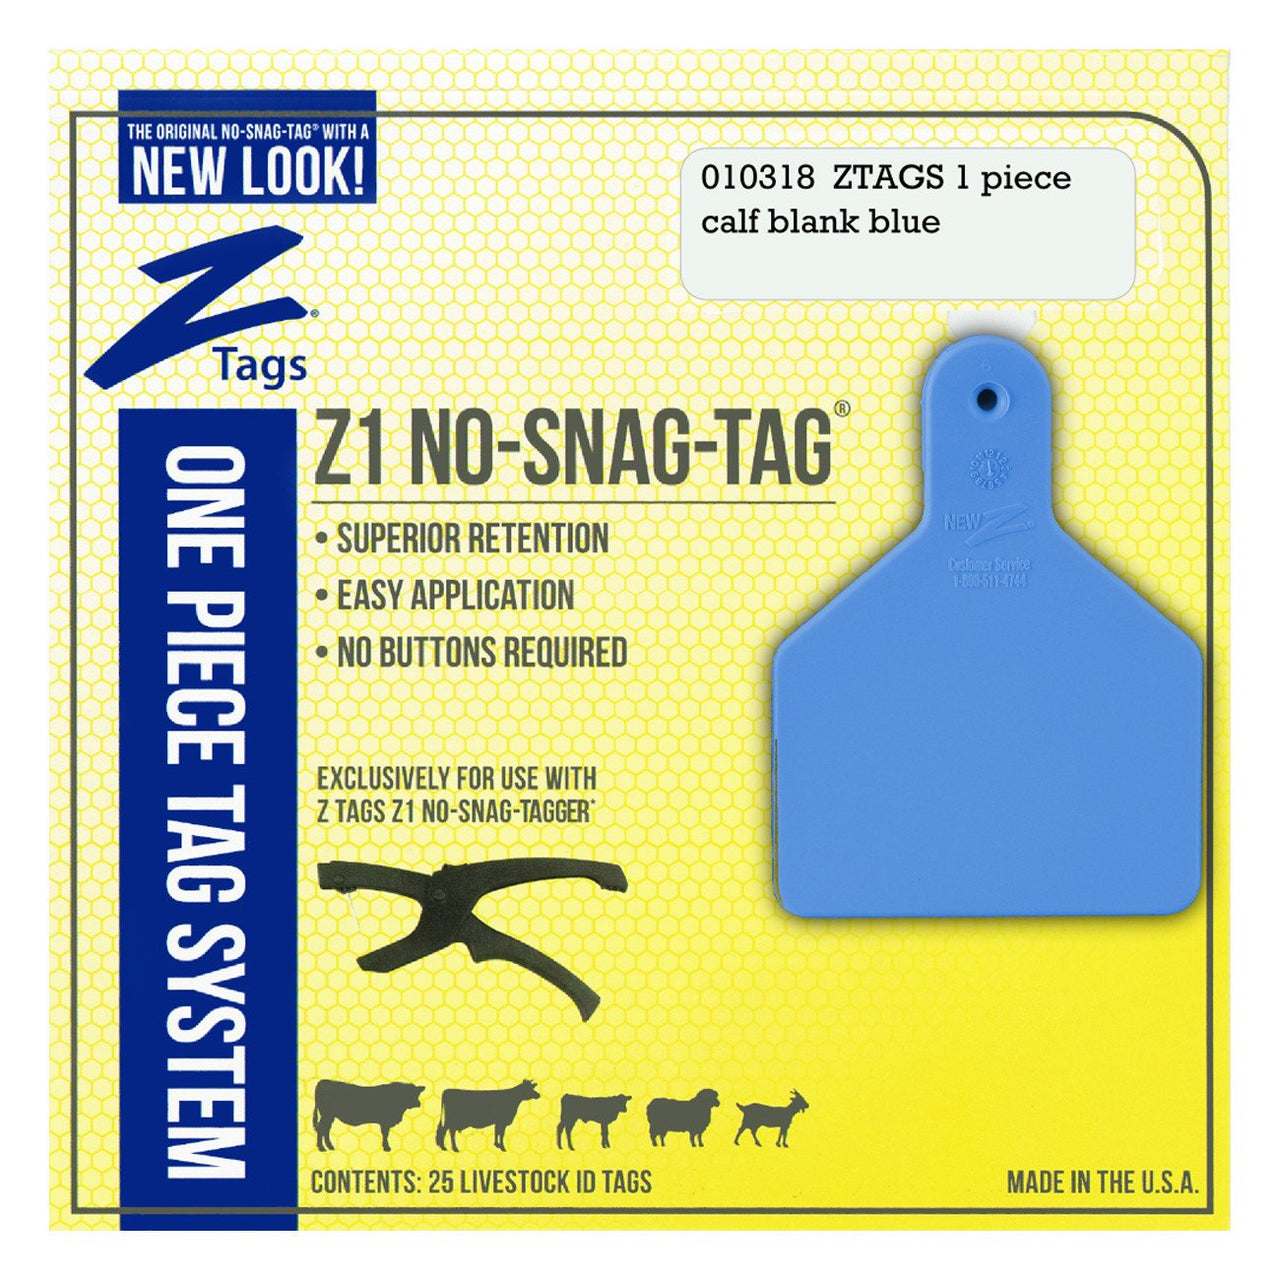 Z Tags 1 Piece Calf Blank (Blue) 25 Pack - 1 Piece Short Neck Calf Blank Tag Z Tags - Canada